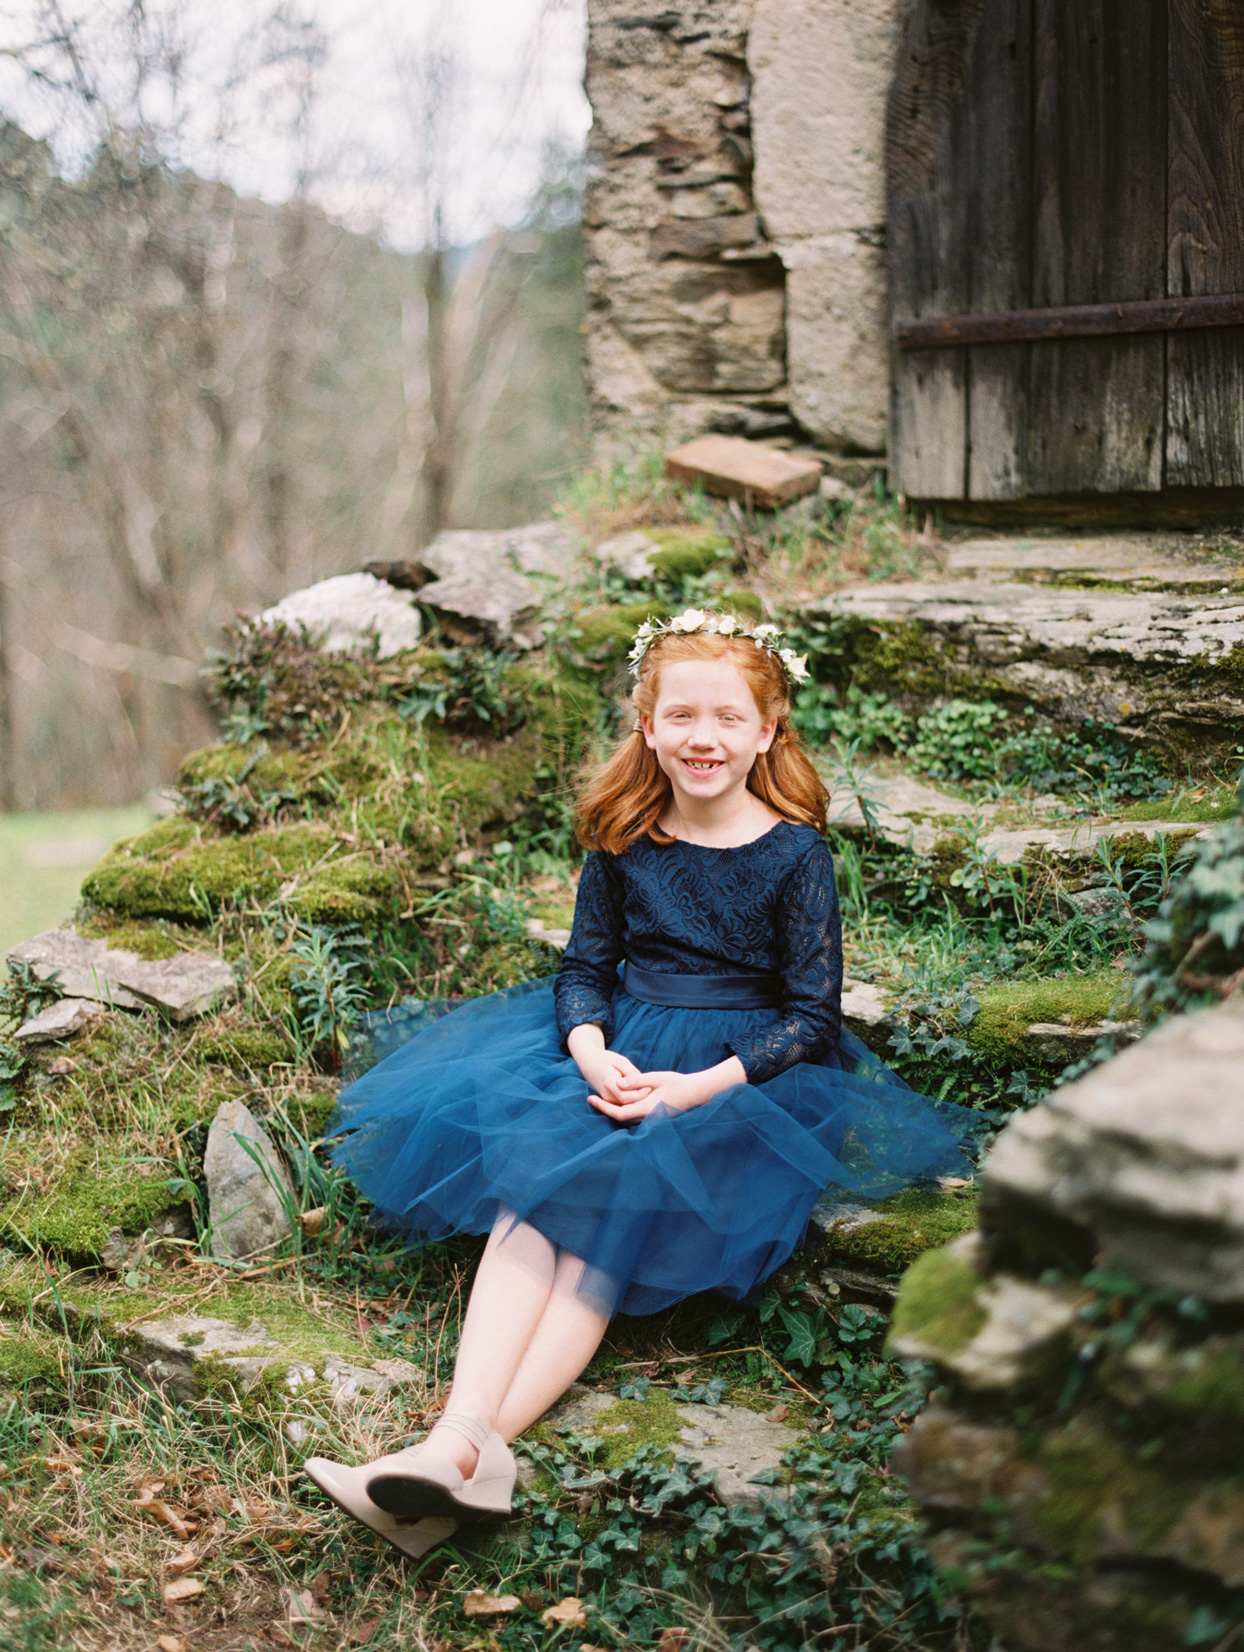 flower girl wearing navy dress with long lace sleeves and flower crown